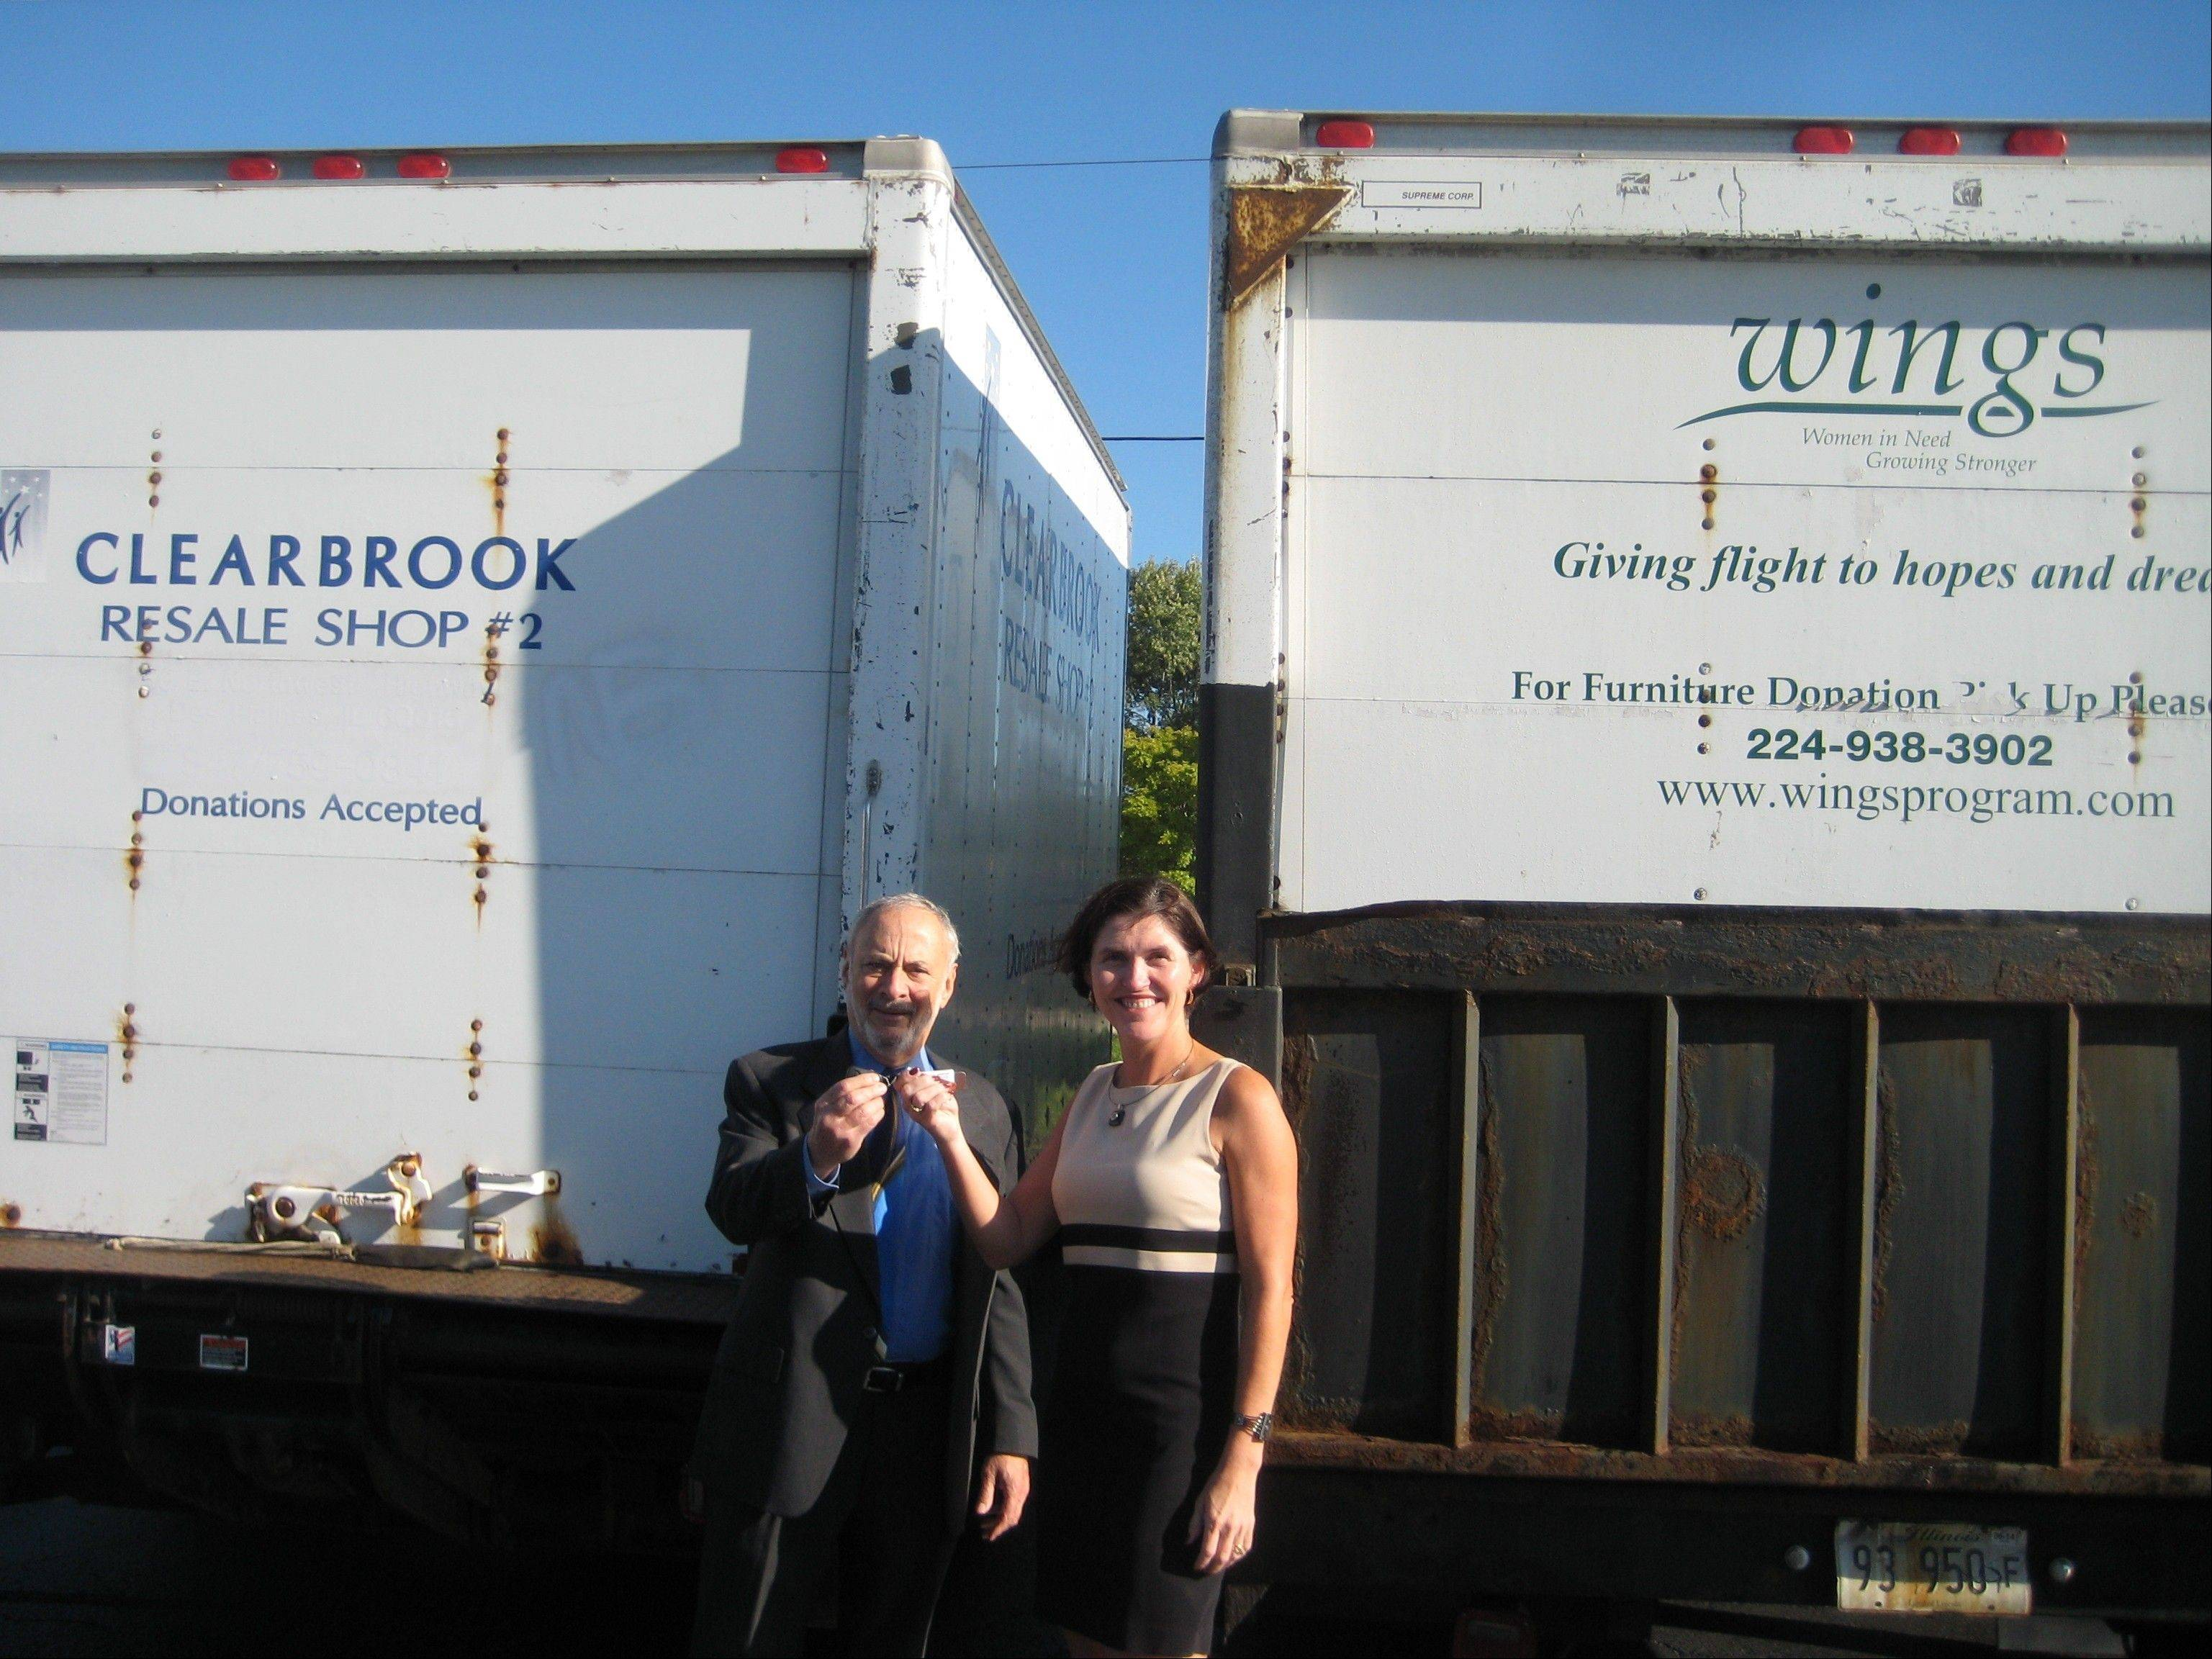 Clearbrook President Carl LaMell hands over the truck keys to Rebecca Darr, executive director of WINGS.